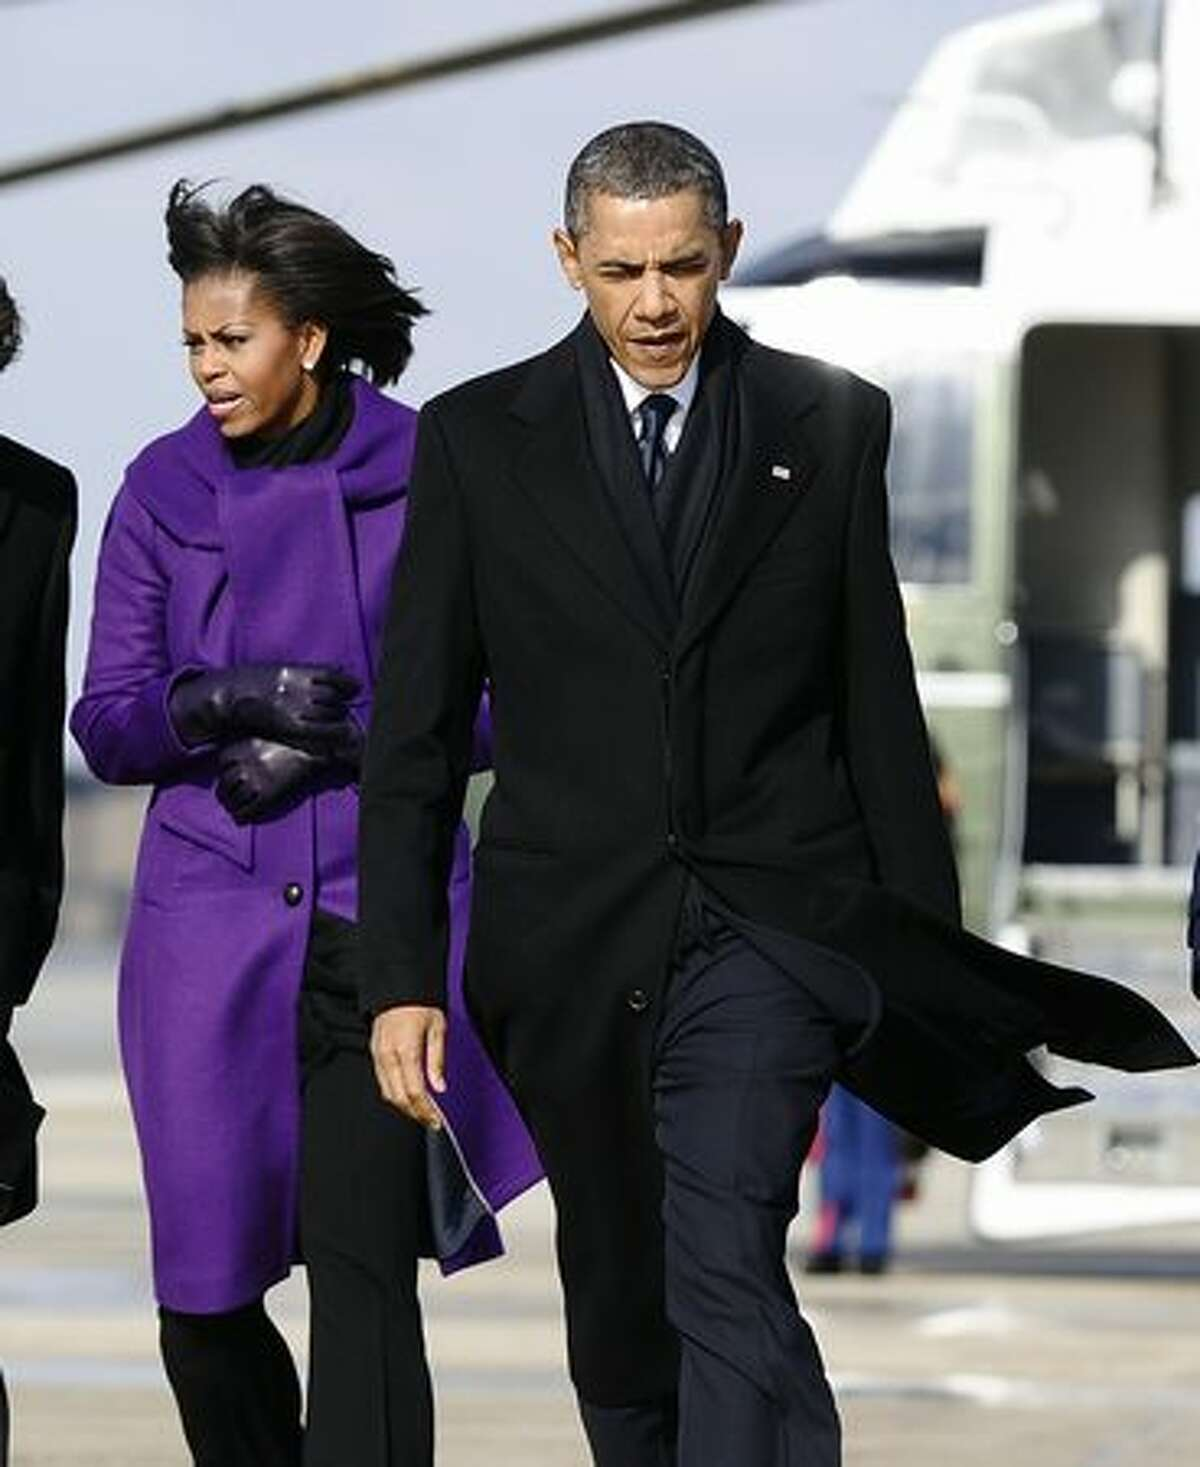 US President Barack Obama and First Lady Michelle Obama arrive to board Air Force One at the Andrews Air Force Base in Maryland on Wednesday to leave for Tucson, Arizona, to attend the memorial event